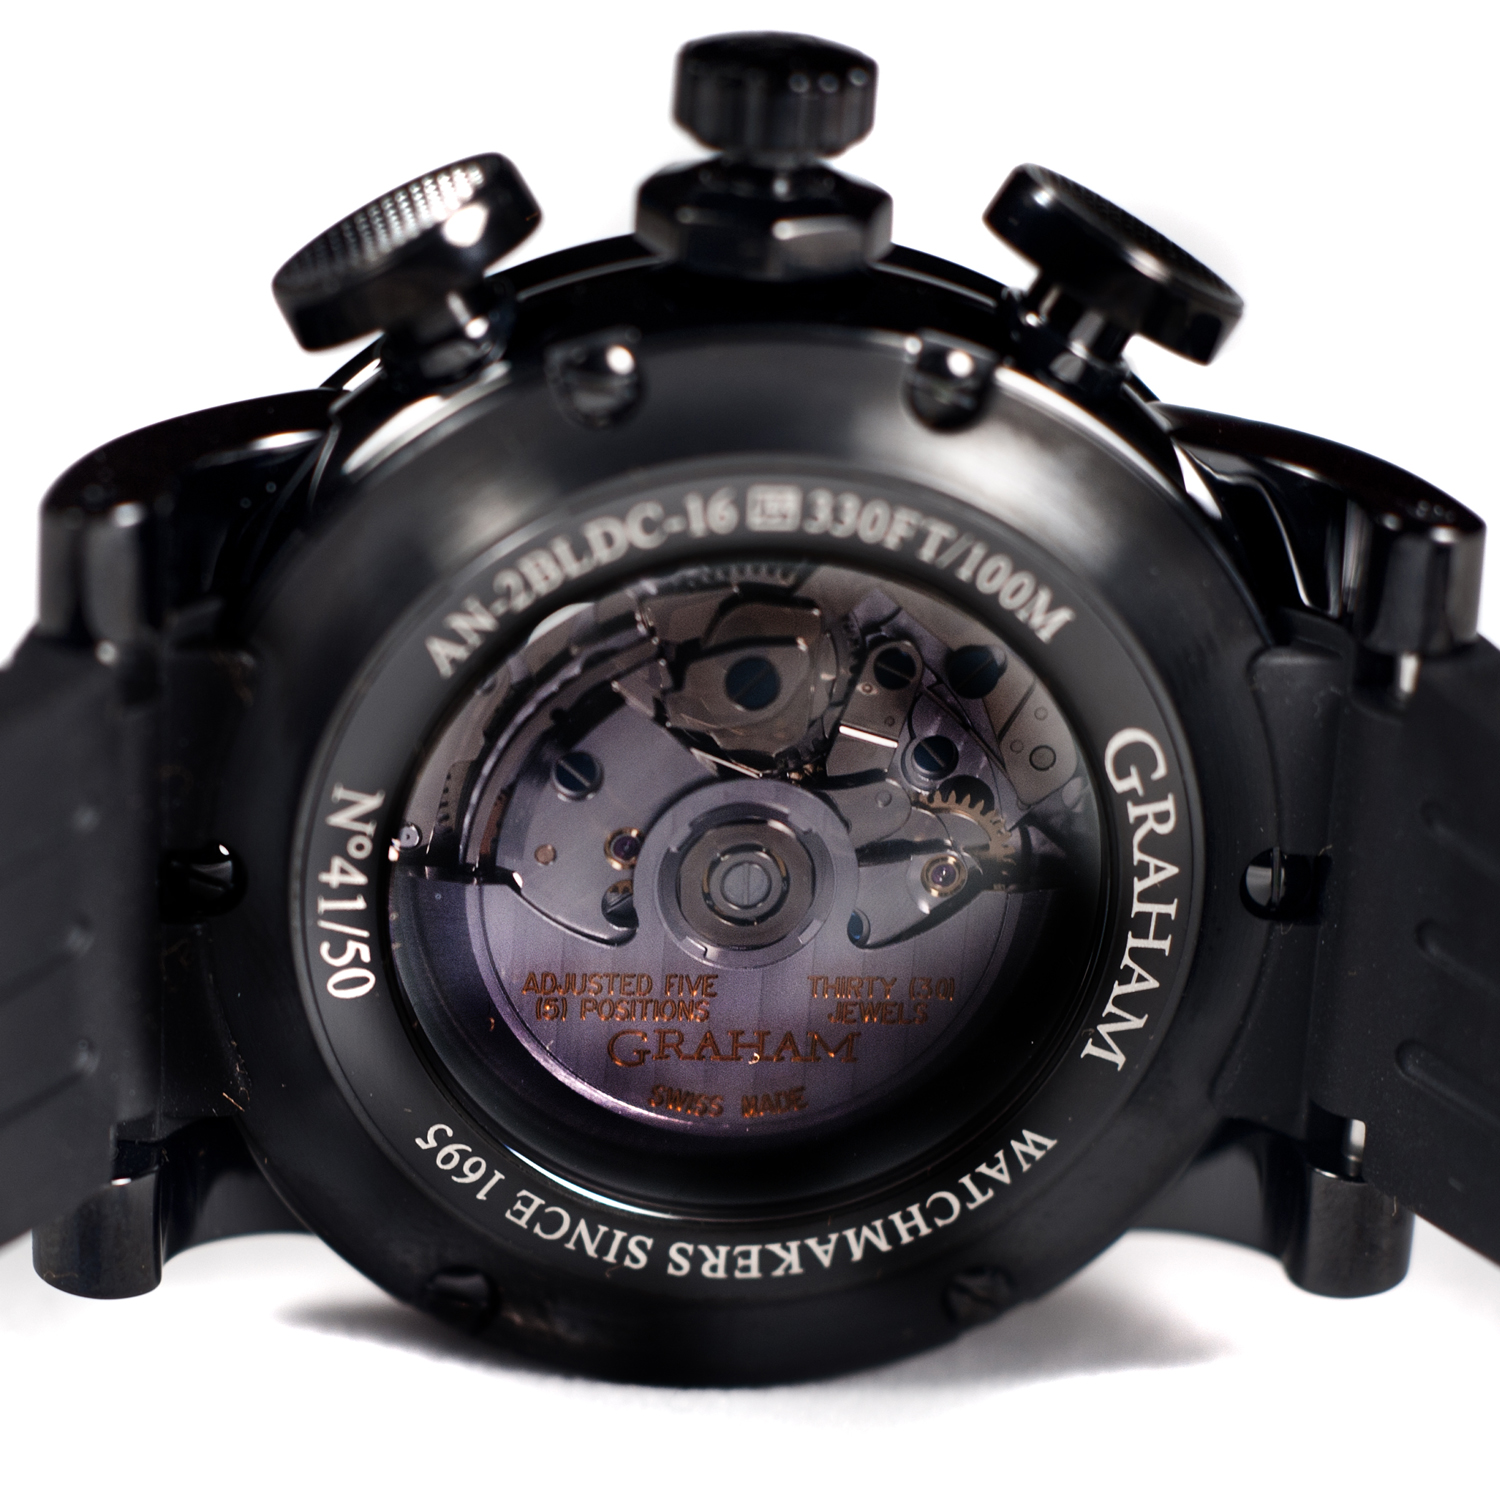 AN-2BLDC-17 Graham Silverstone Stowe 30 Jewels Automatic Racing Chrono BLK/ORG Only 50 PCS Made